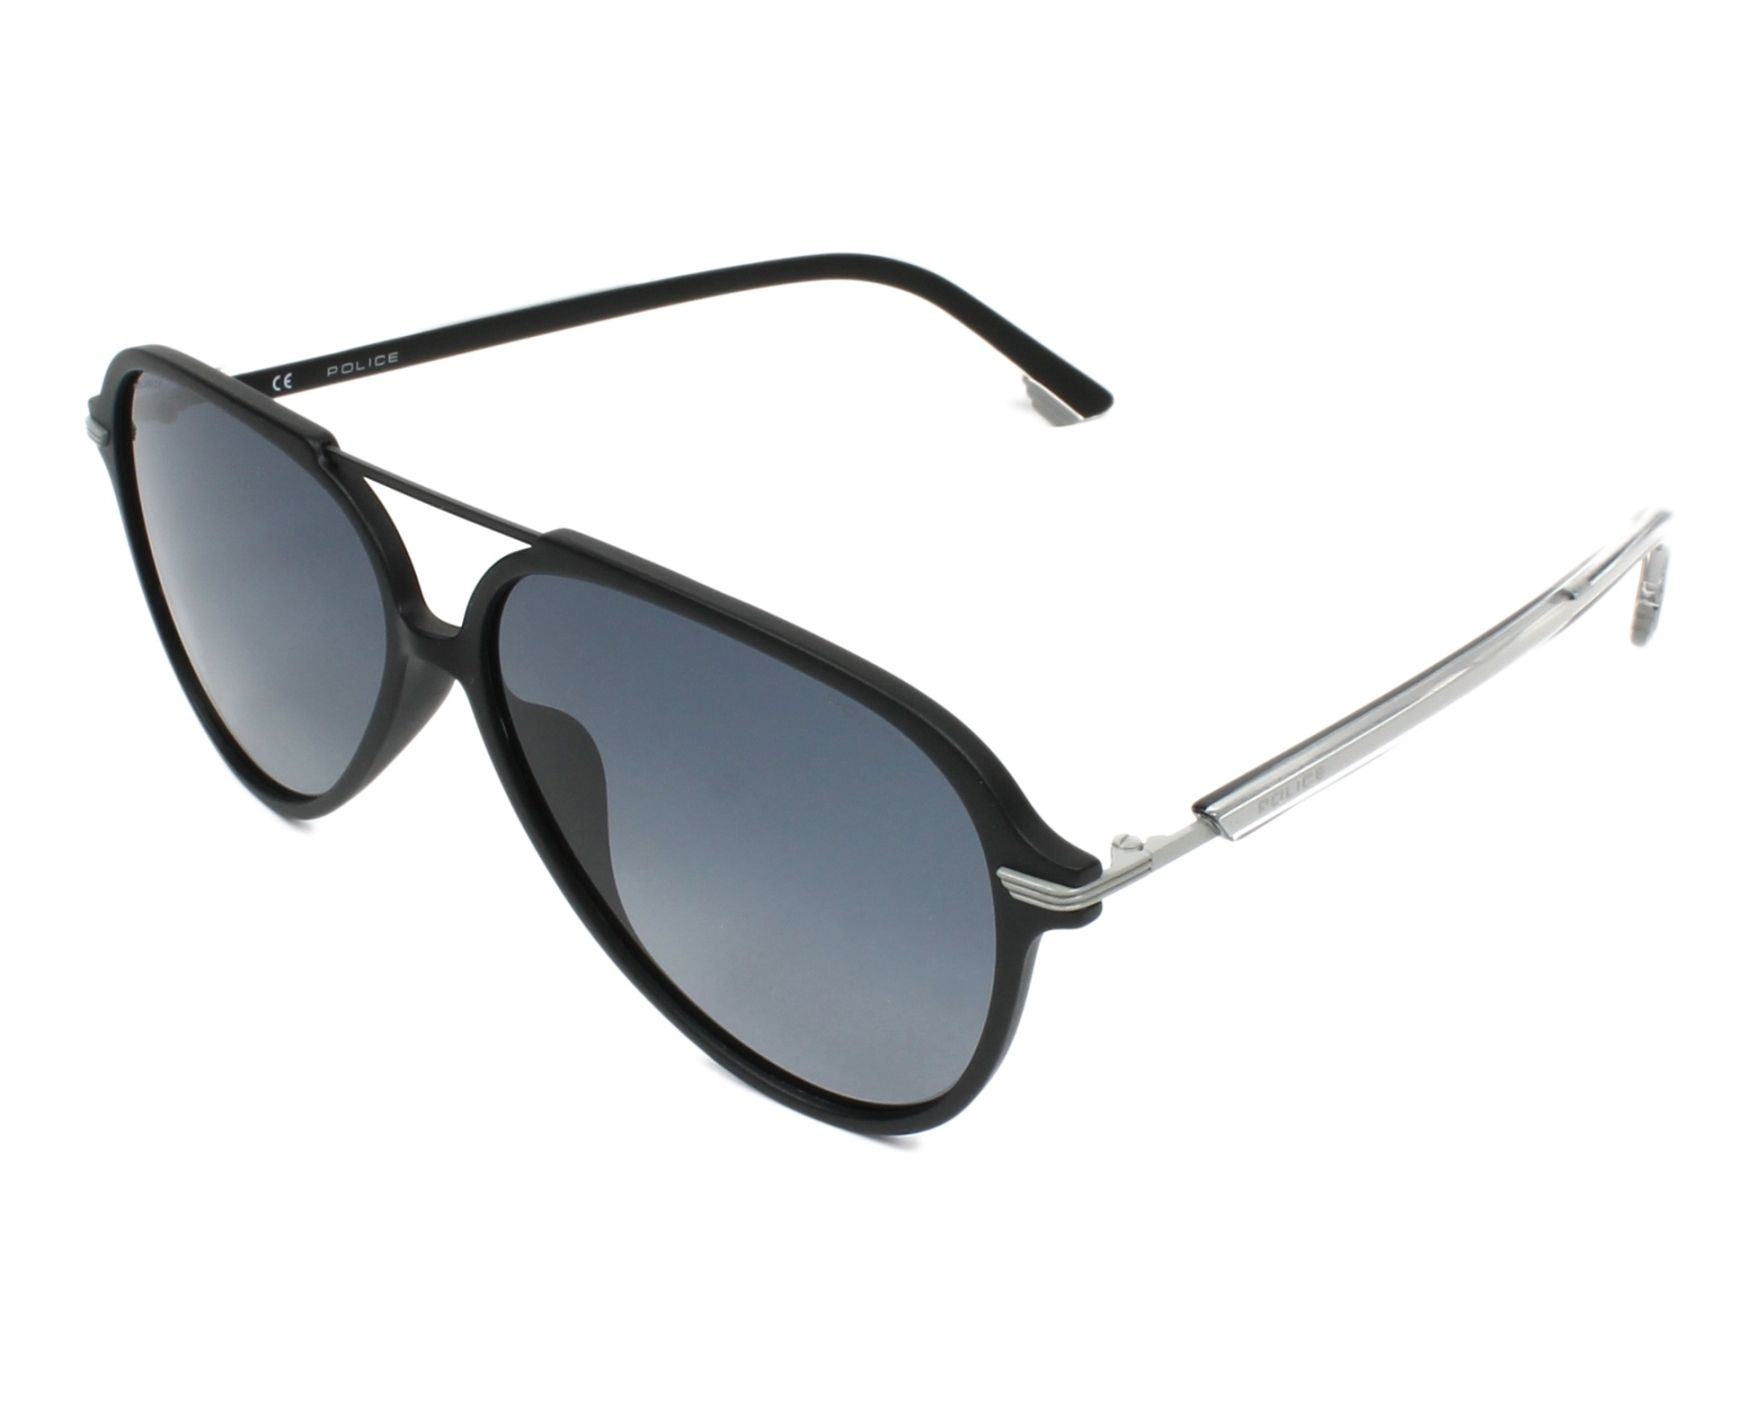 37c056eb1c3 Sunglasses Police SPL-582 U28Z 58-13 Black Grey profile view